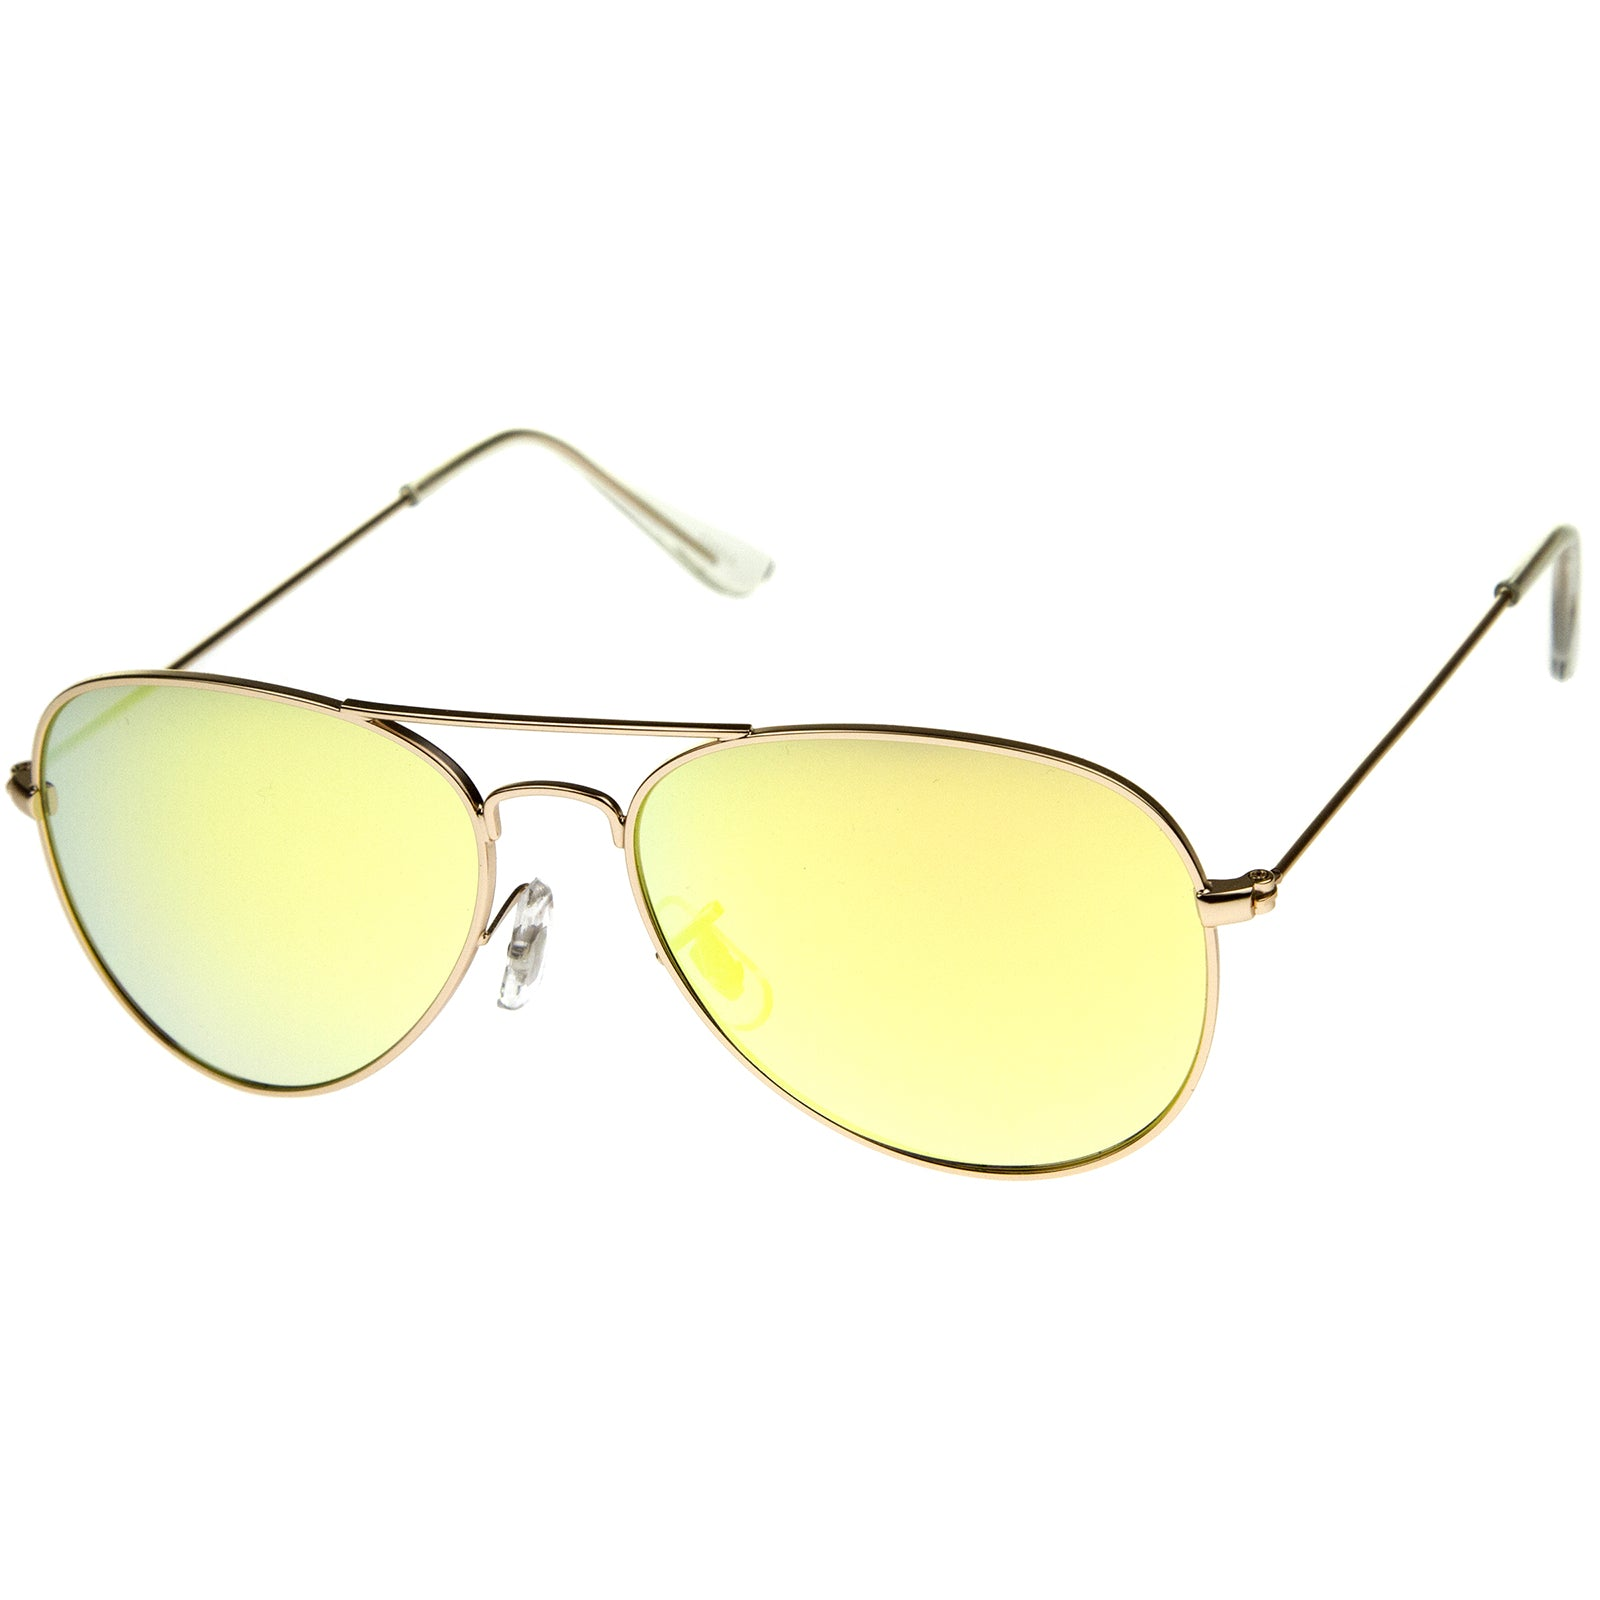 Premium Nickel Plated Frame Multi-Coated Mirror Lens Aviator Sunglasses 59mm - sunglass.la - 14